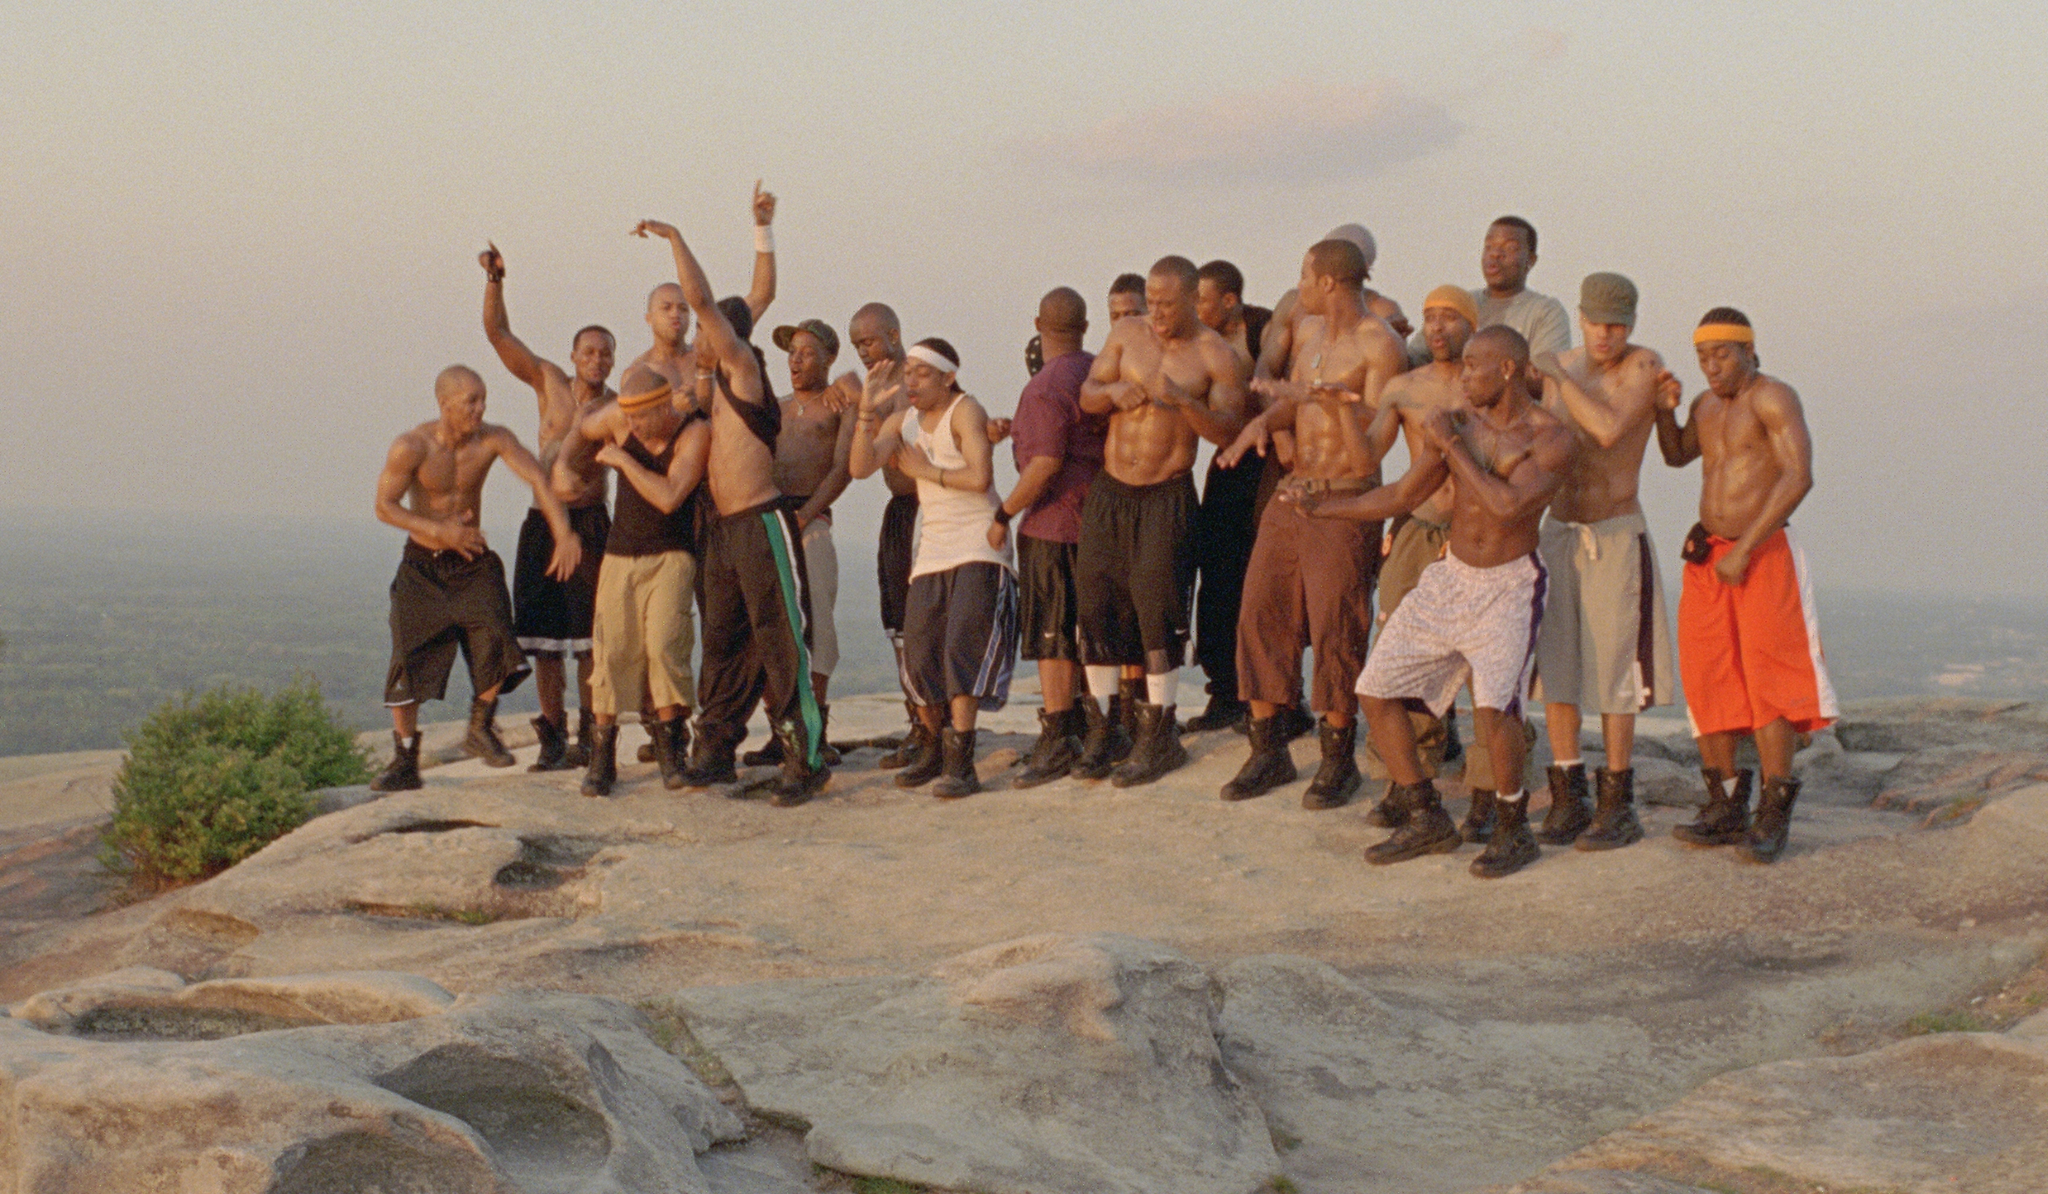 Sahr Ngaujah, Brian White, Columbus Short, Duain Richmond, Ne-Yo, Christopher Toler, Justin Hires, and Roderick Thomas in Stomp the Yard (2007)